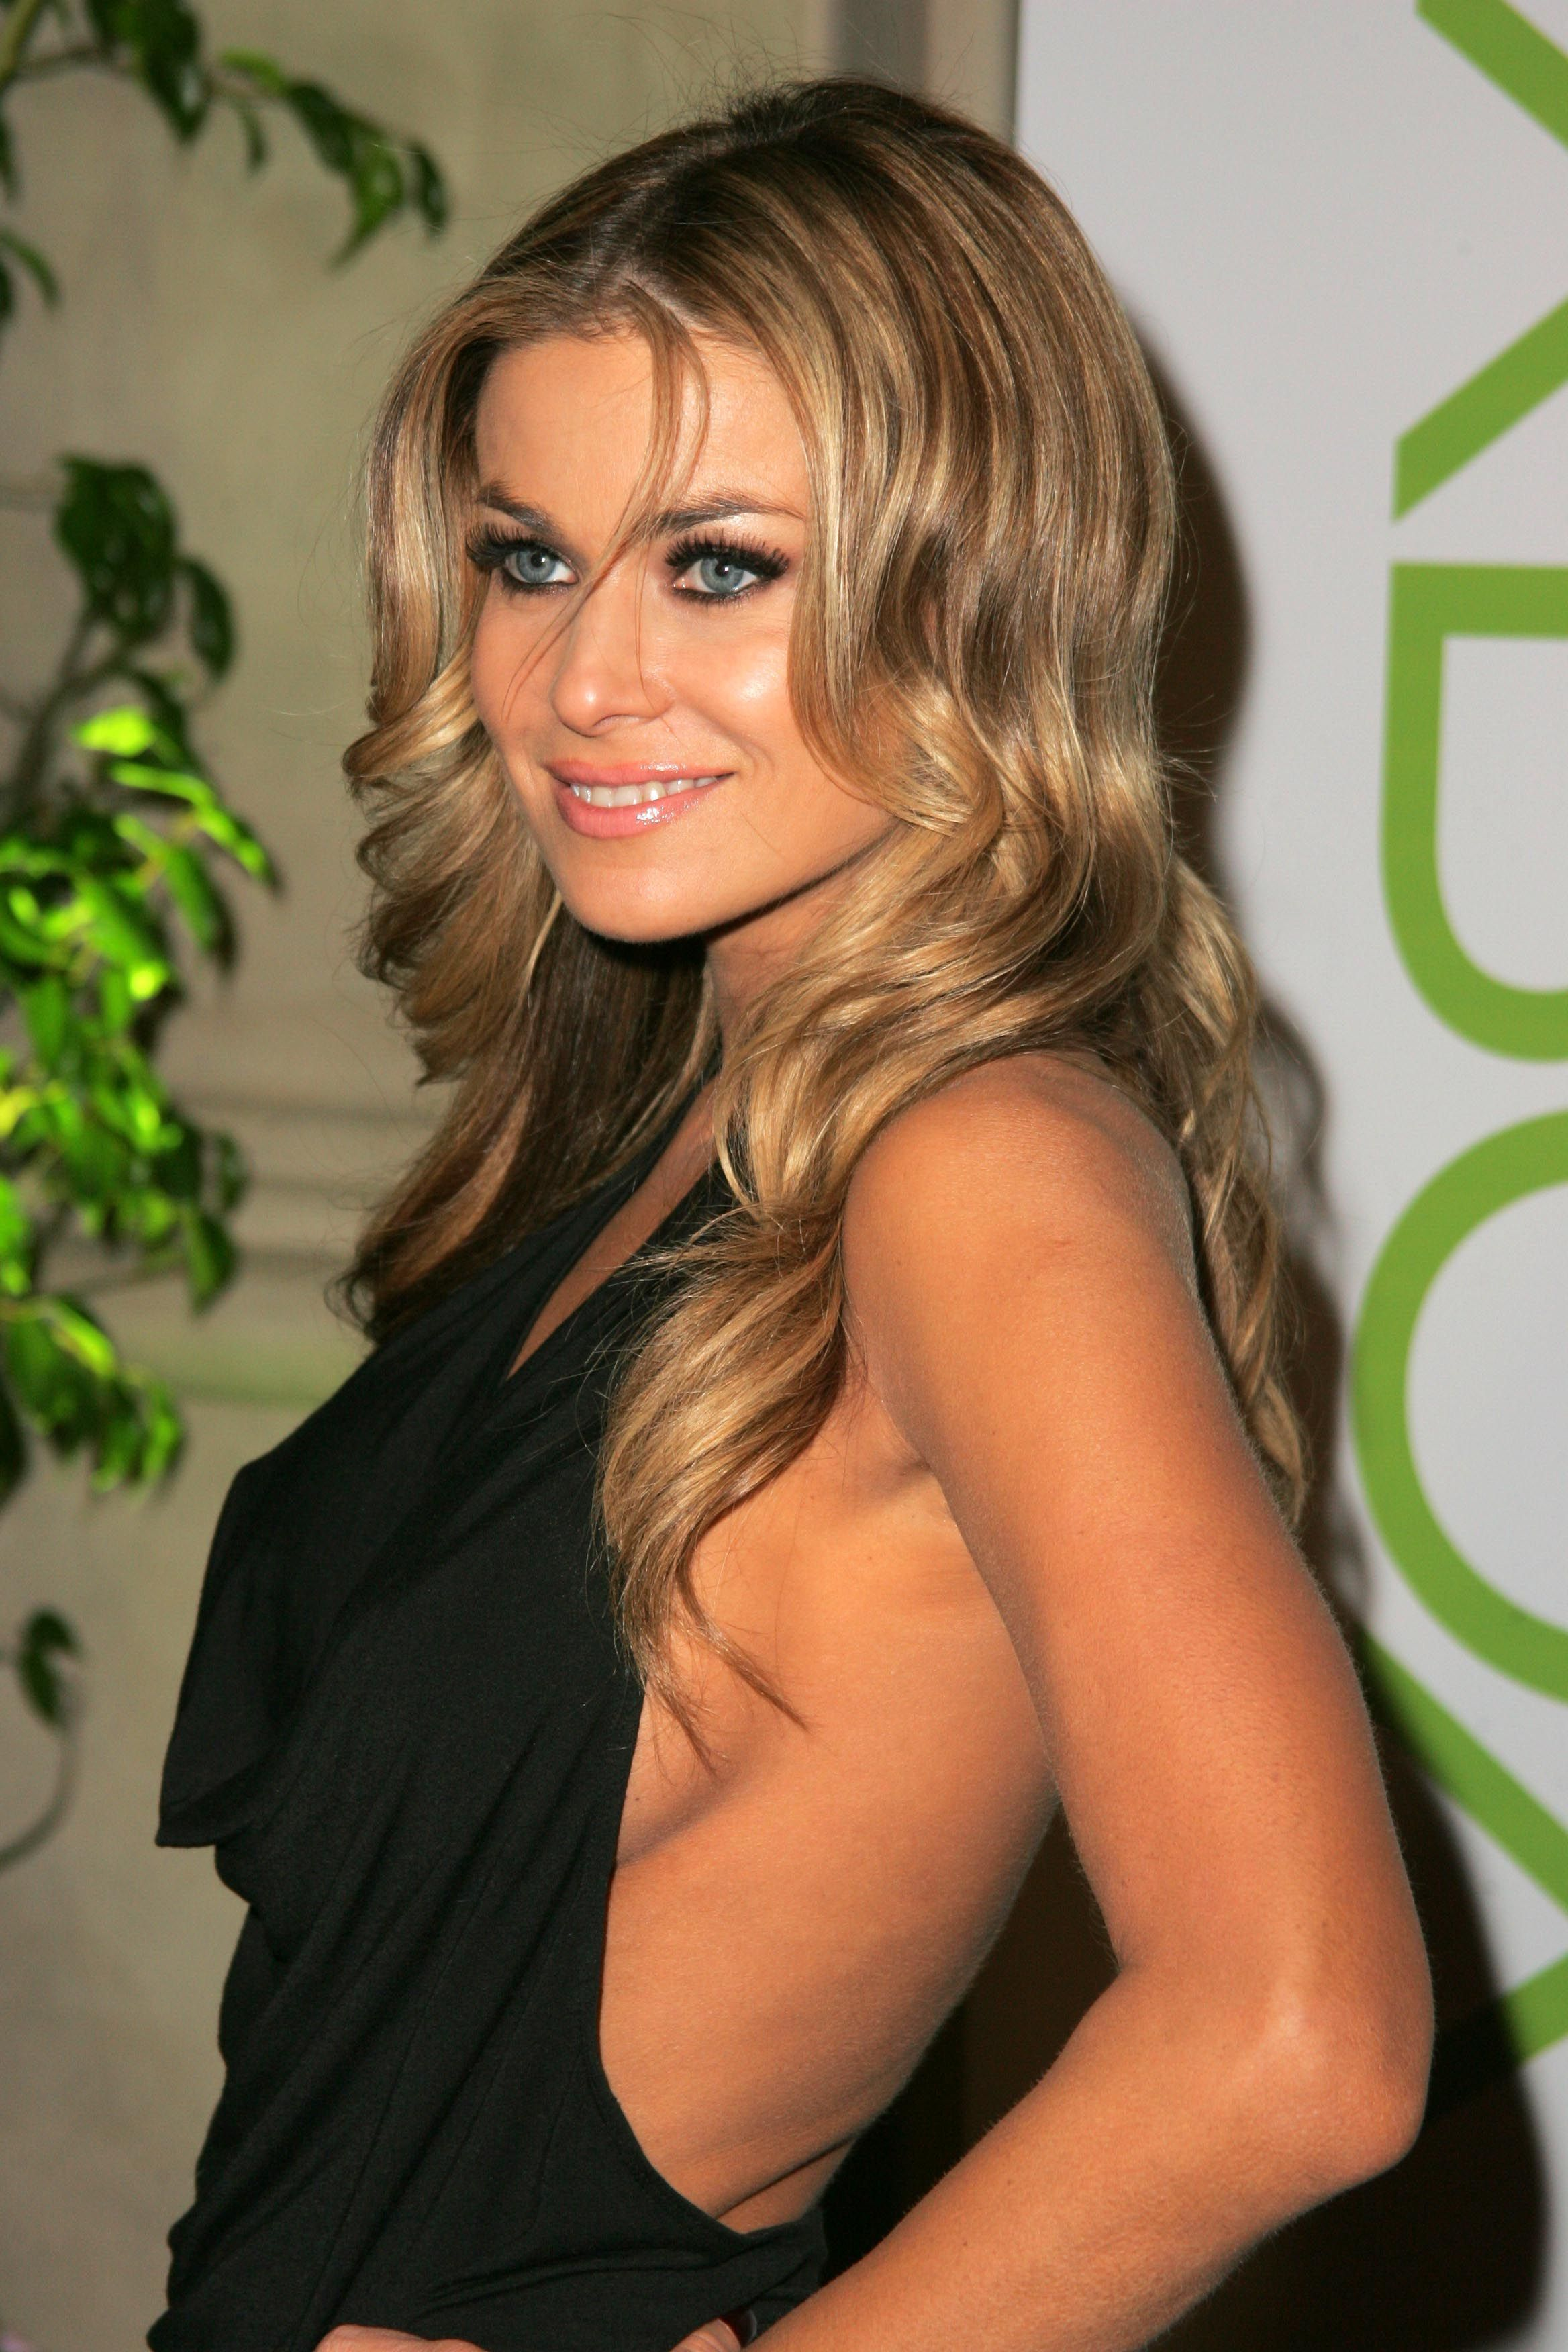 Carmen Electra United States nude (18 pictures) Ass, Instagram, lingerie